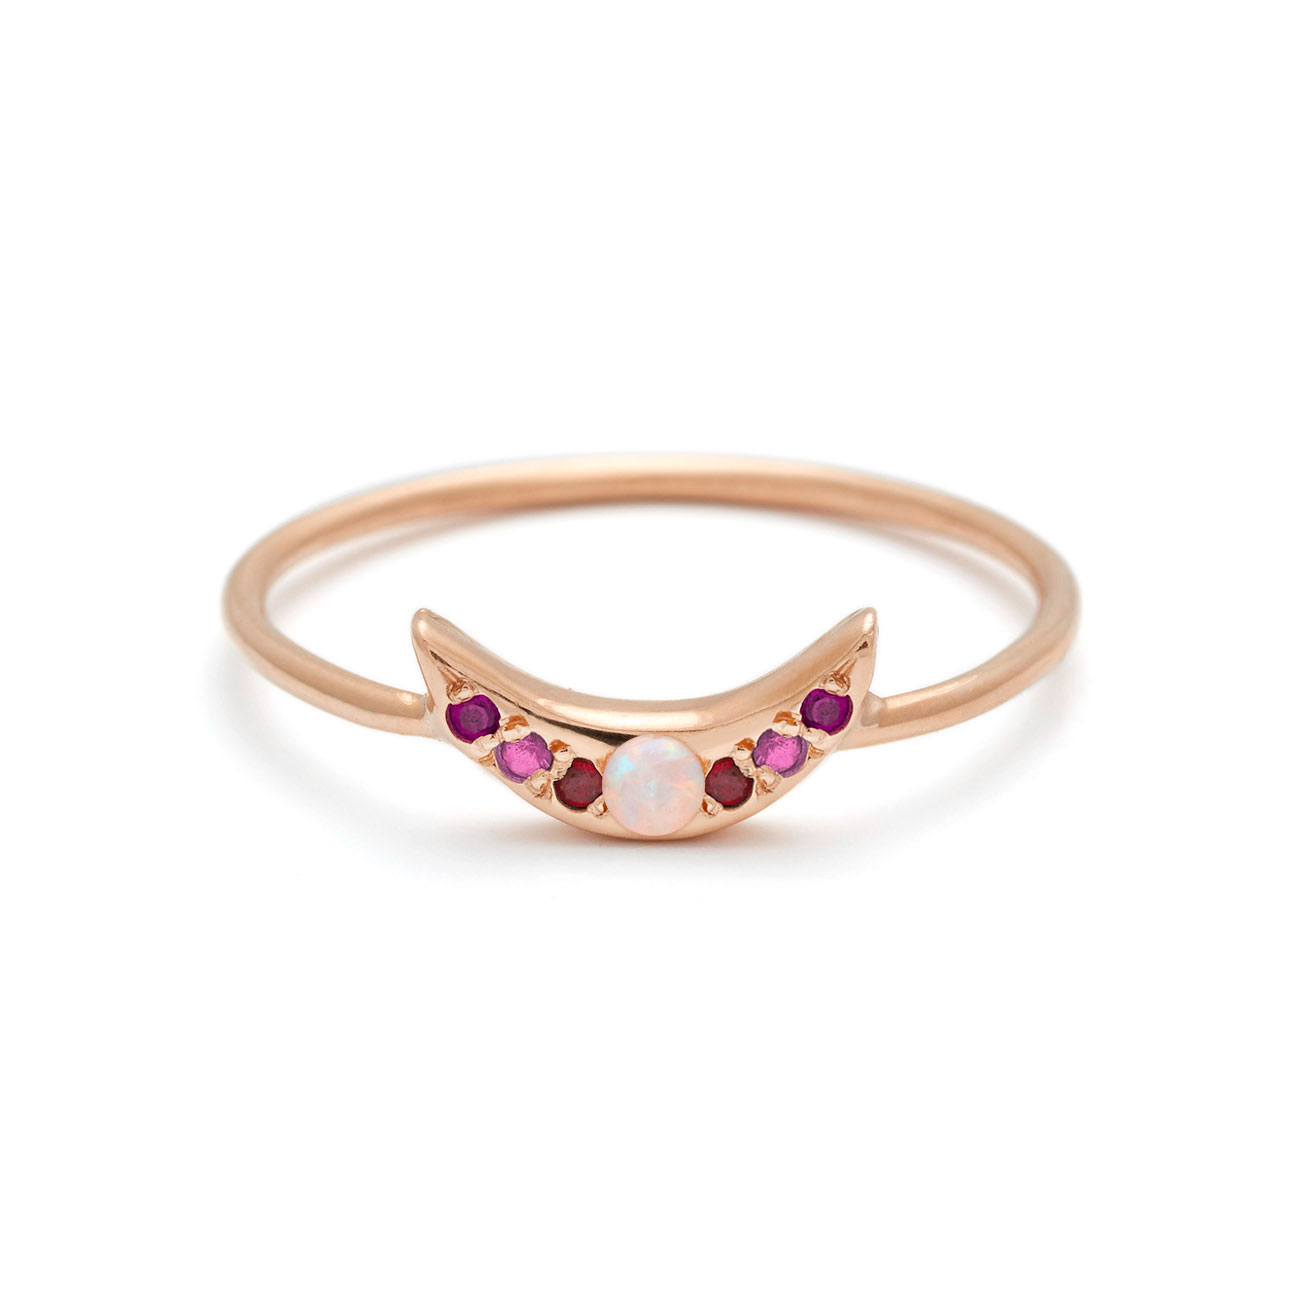 Mini Moon Ring - Personalize the Gemstones - 14k Rose Gold